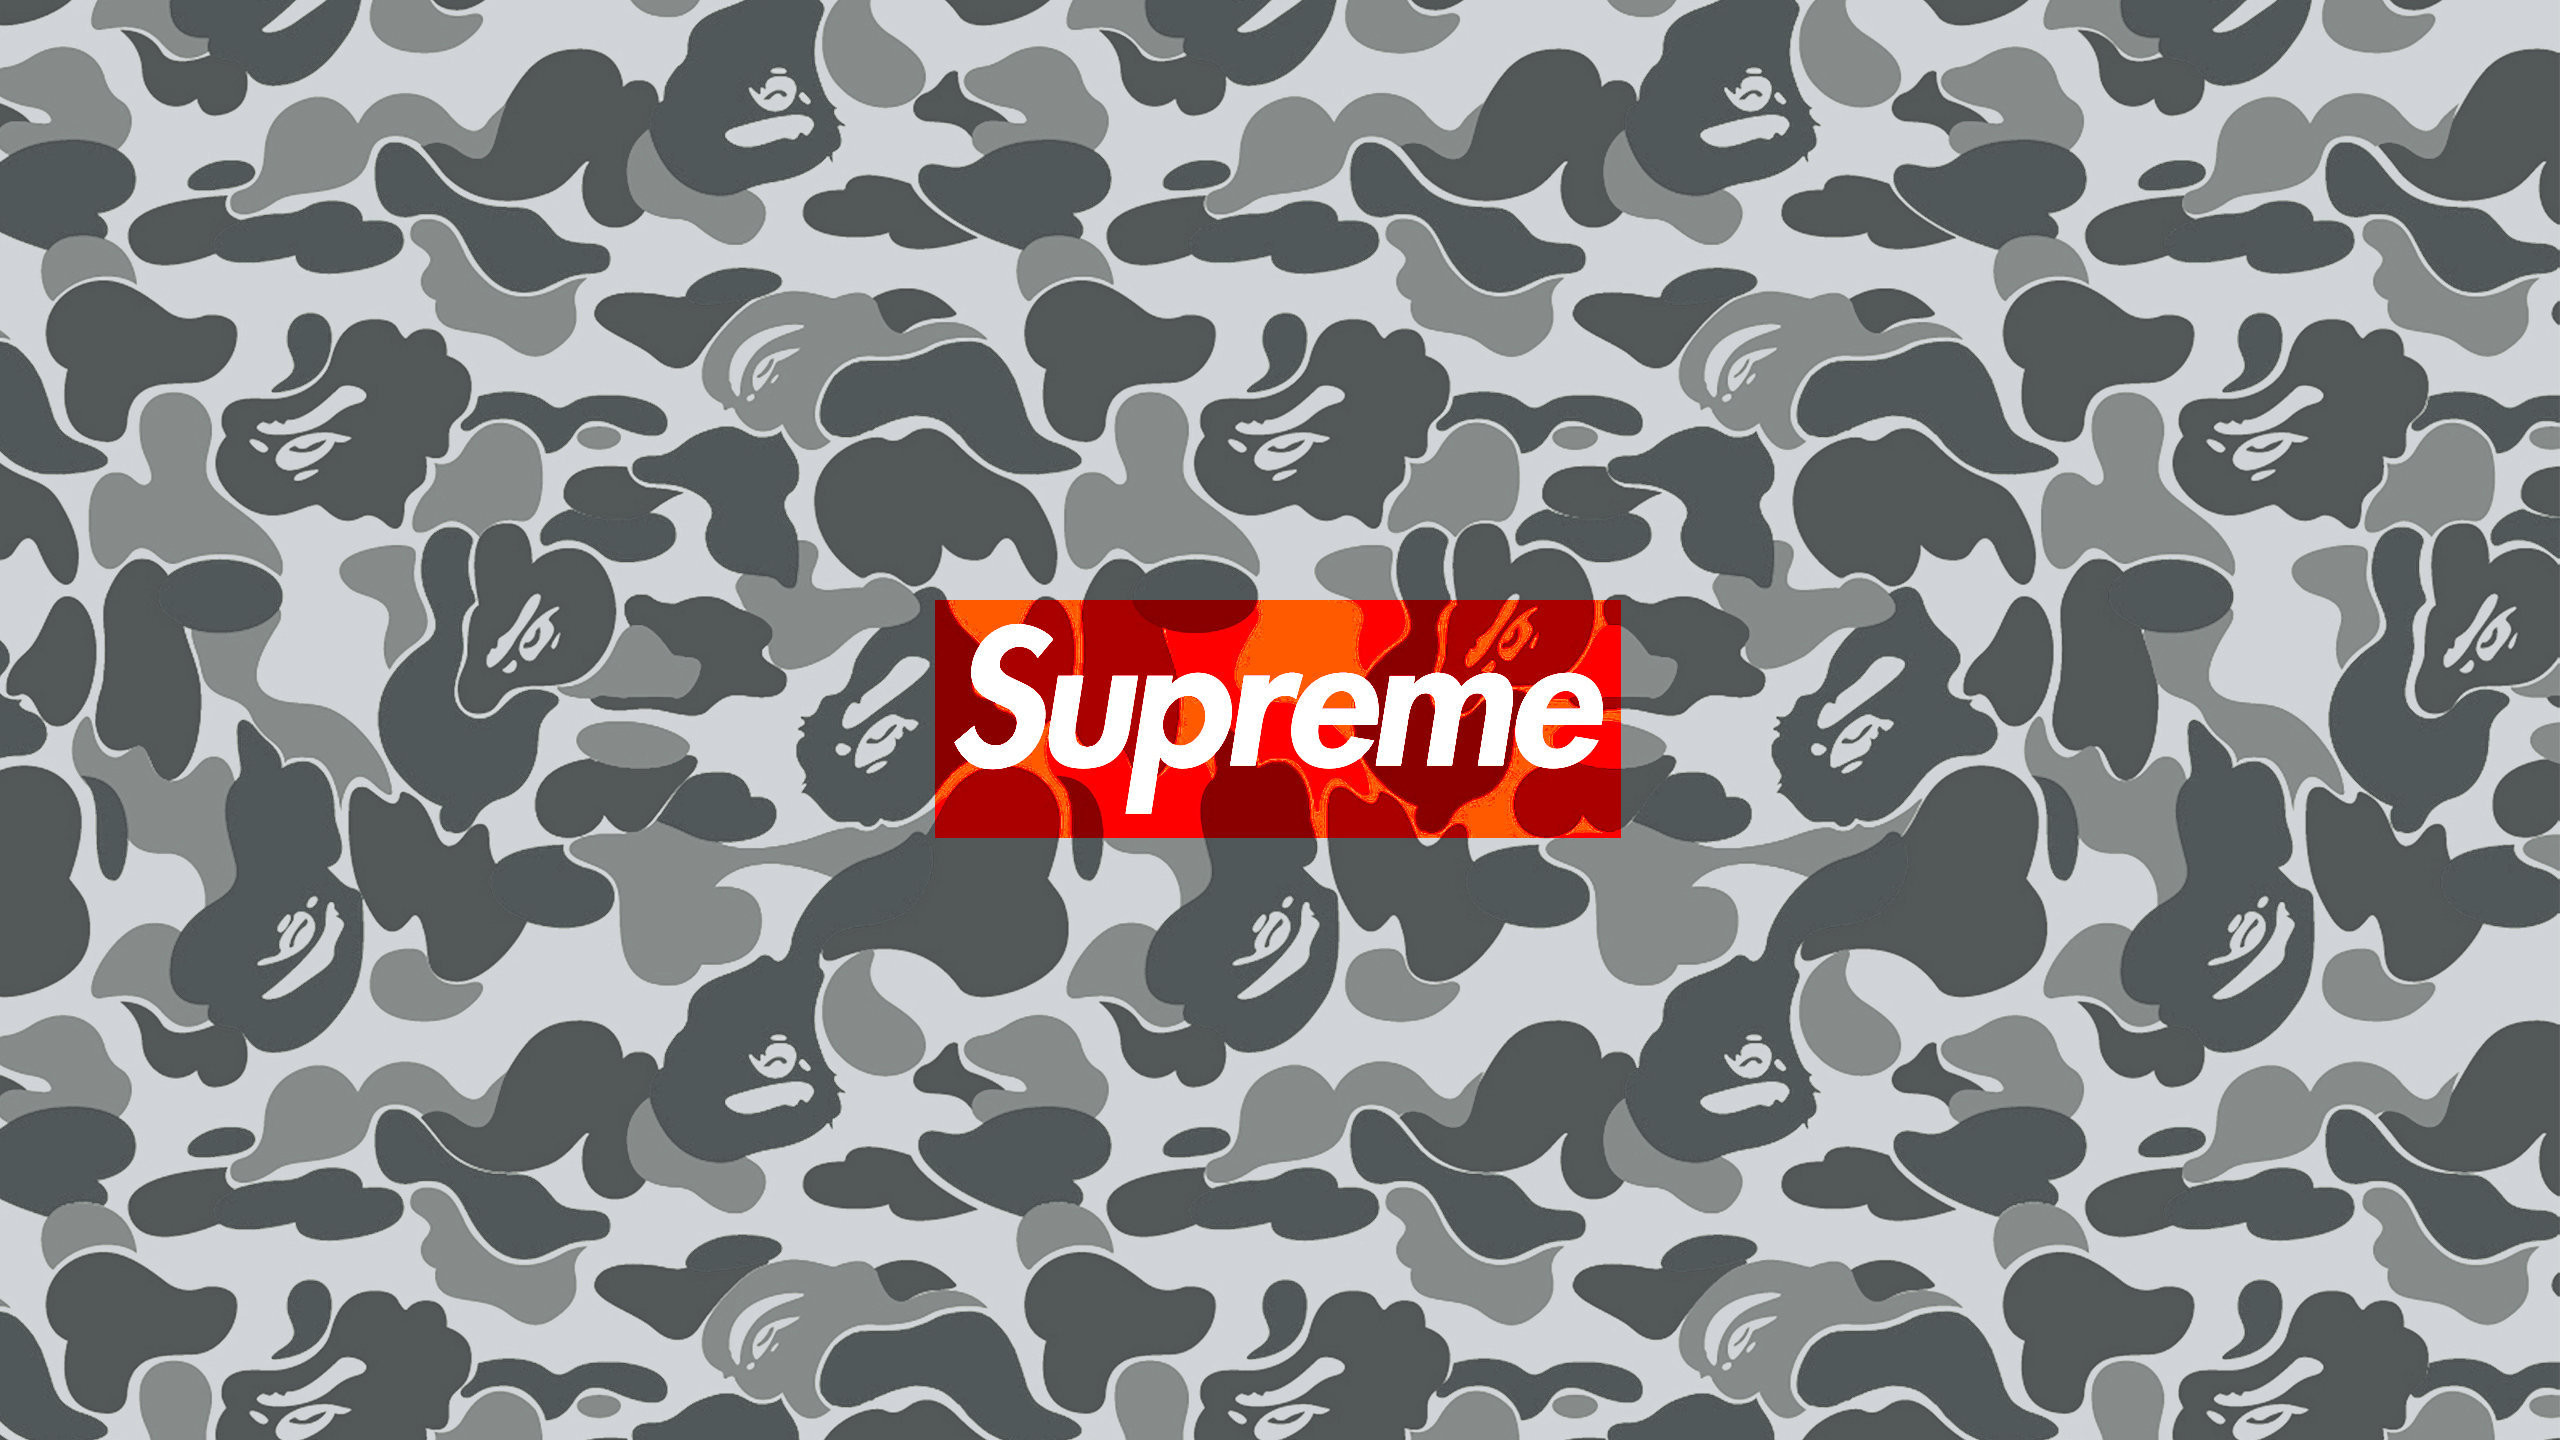 2560x1440 Download the Supreme Bape Camo wallpaper below for your mobile device  (Android phones, iPhone etc.)